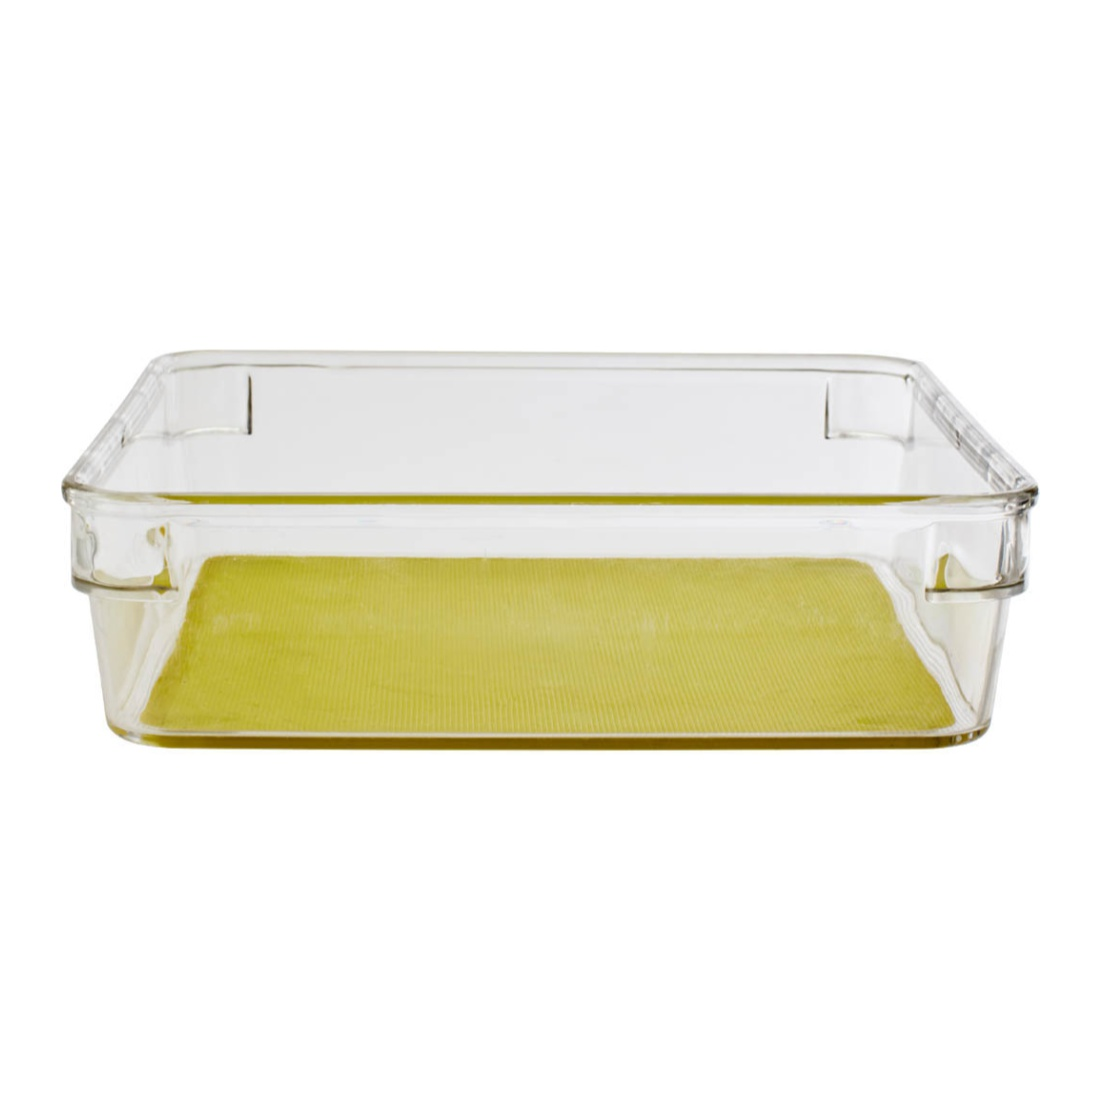 Living Essence Plastic Kitchen Organizers in Translucent Colour by Living Essence